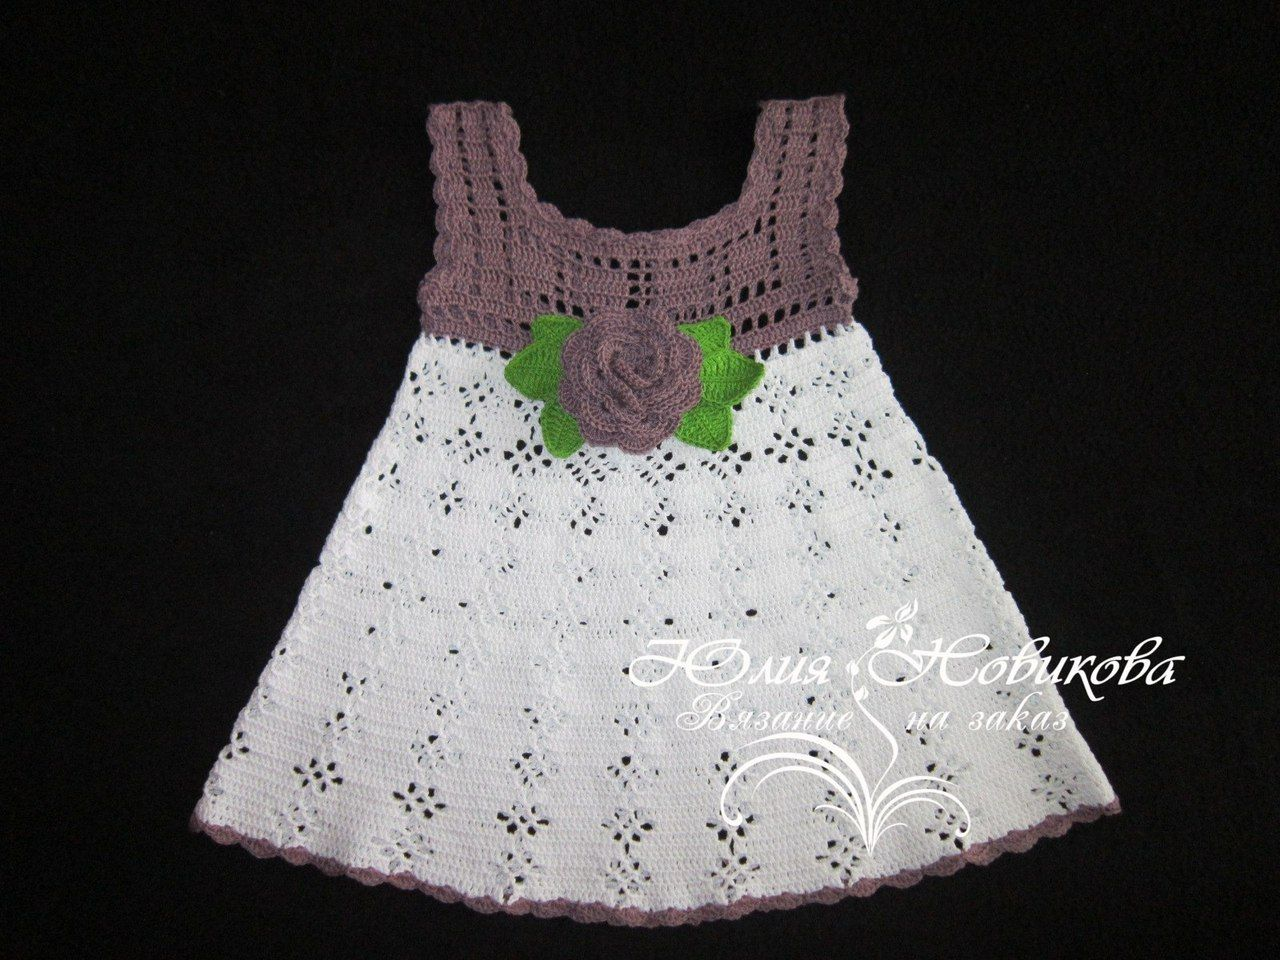 Crochet baby dress crochet baby dresses crochet baby and crochet click to view pattern for crochet baby dress bankloansurffo Choice Image